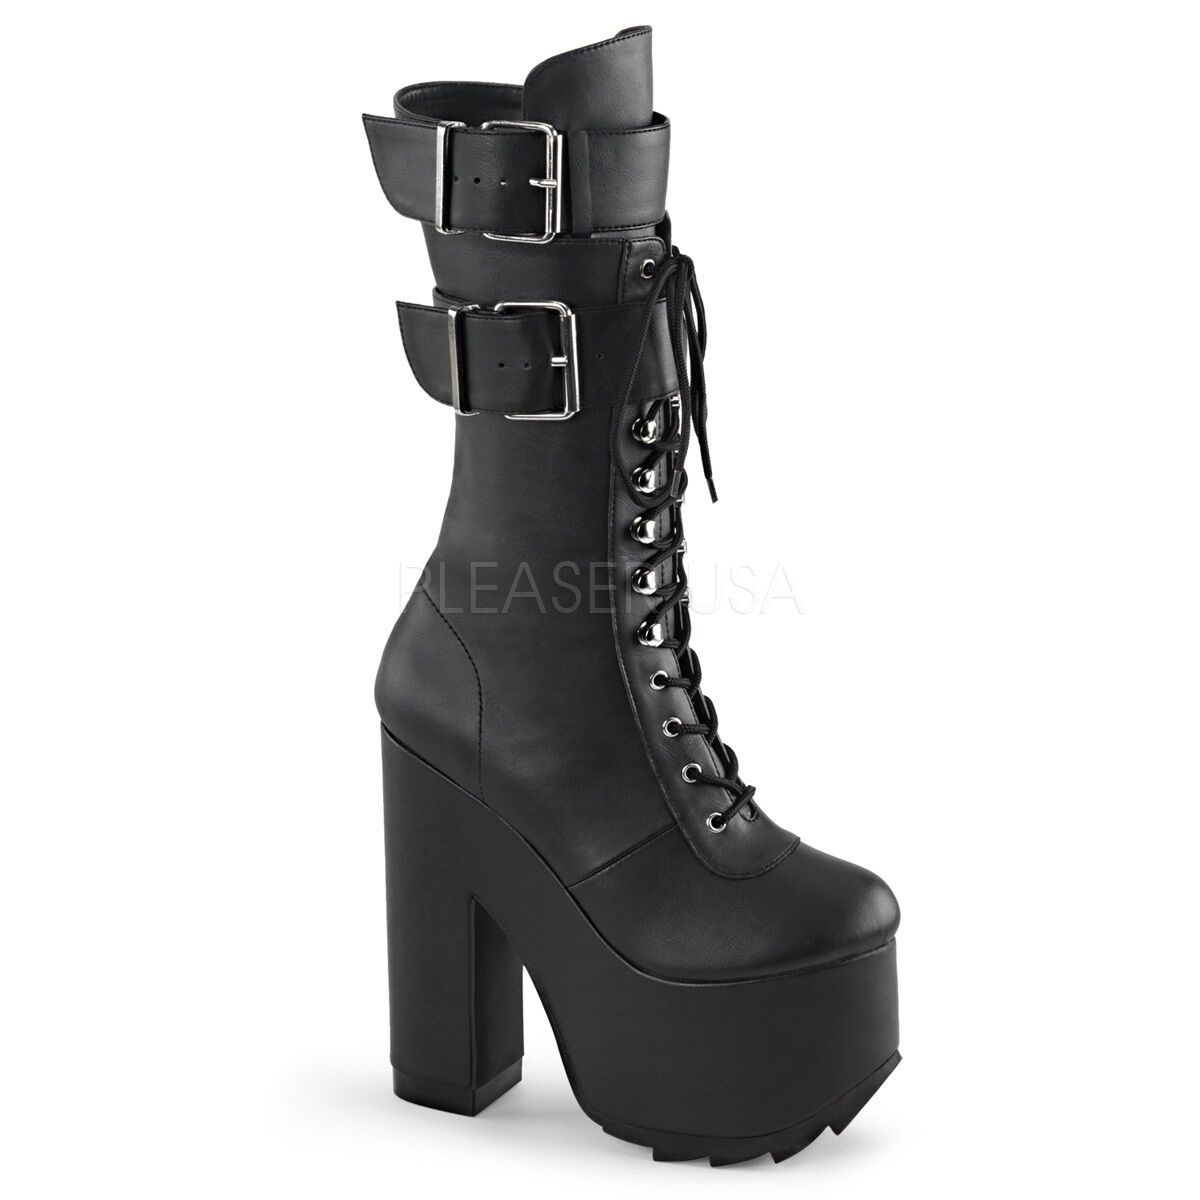 6 1 4  Block Heel Ridged Platform Gothic Punk Double Buckle Calf High Boots